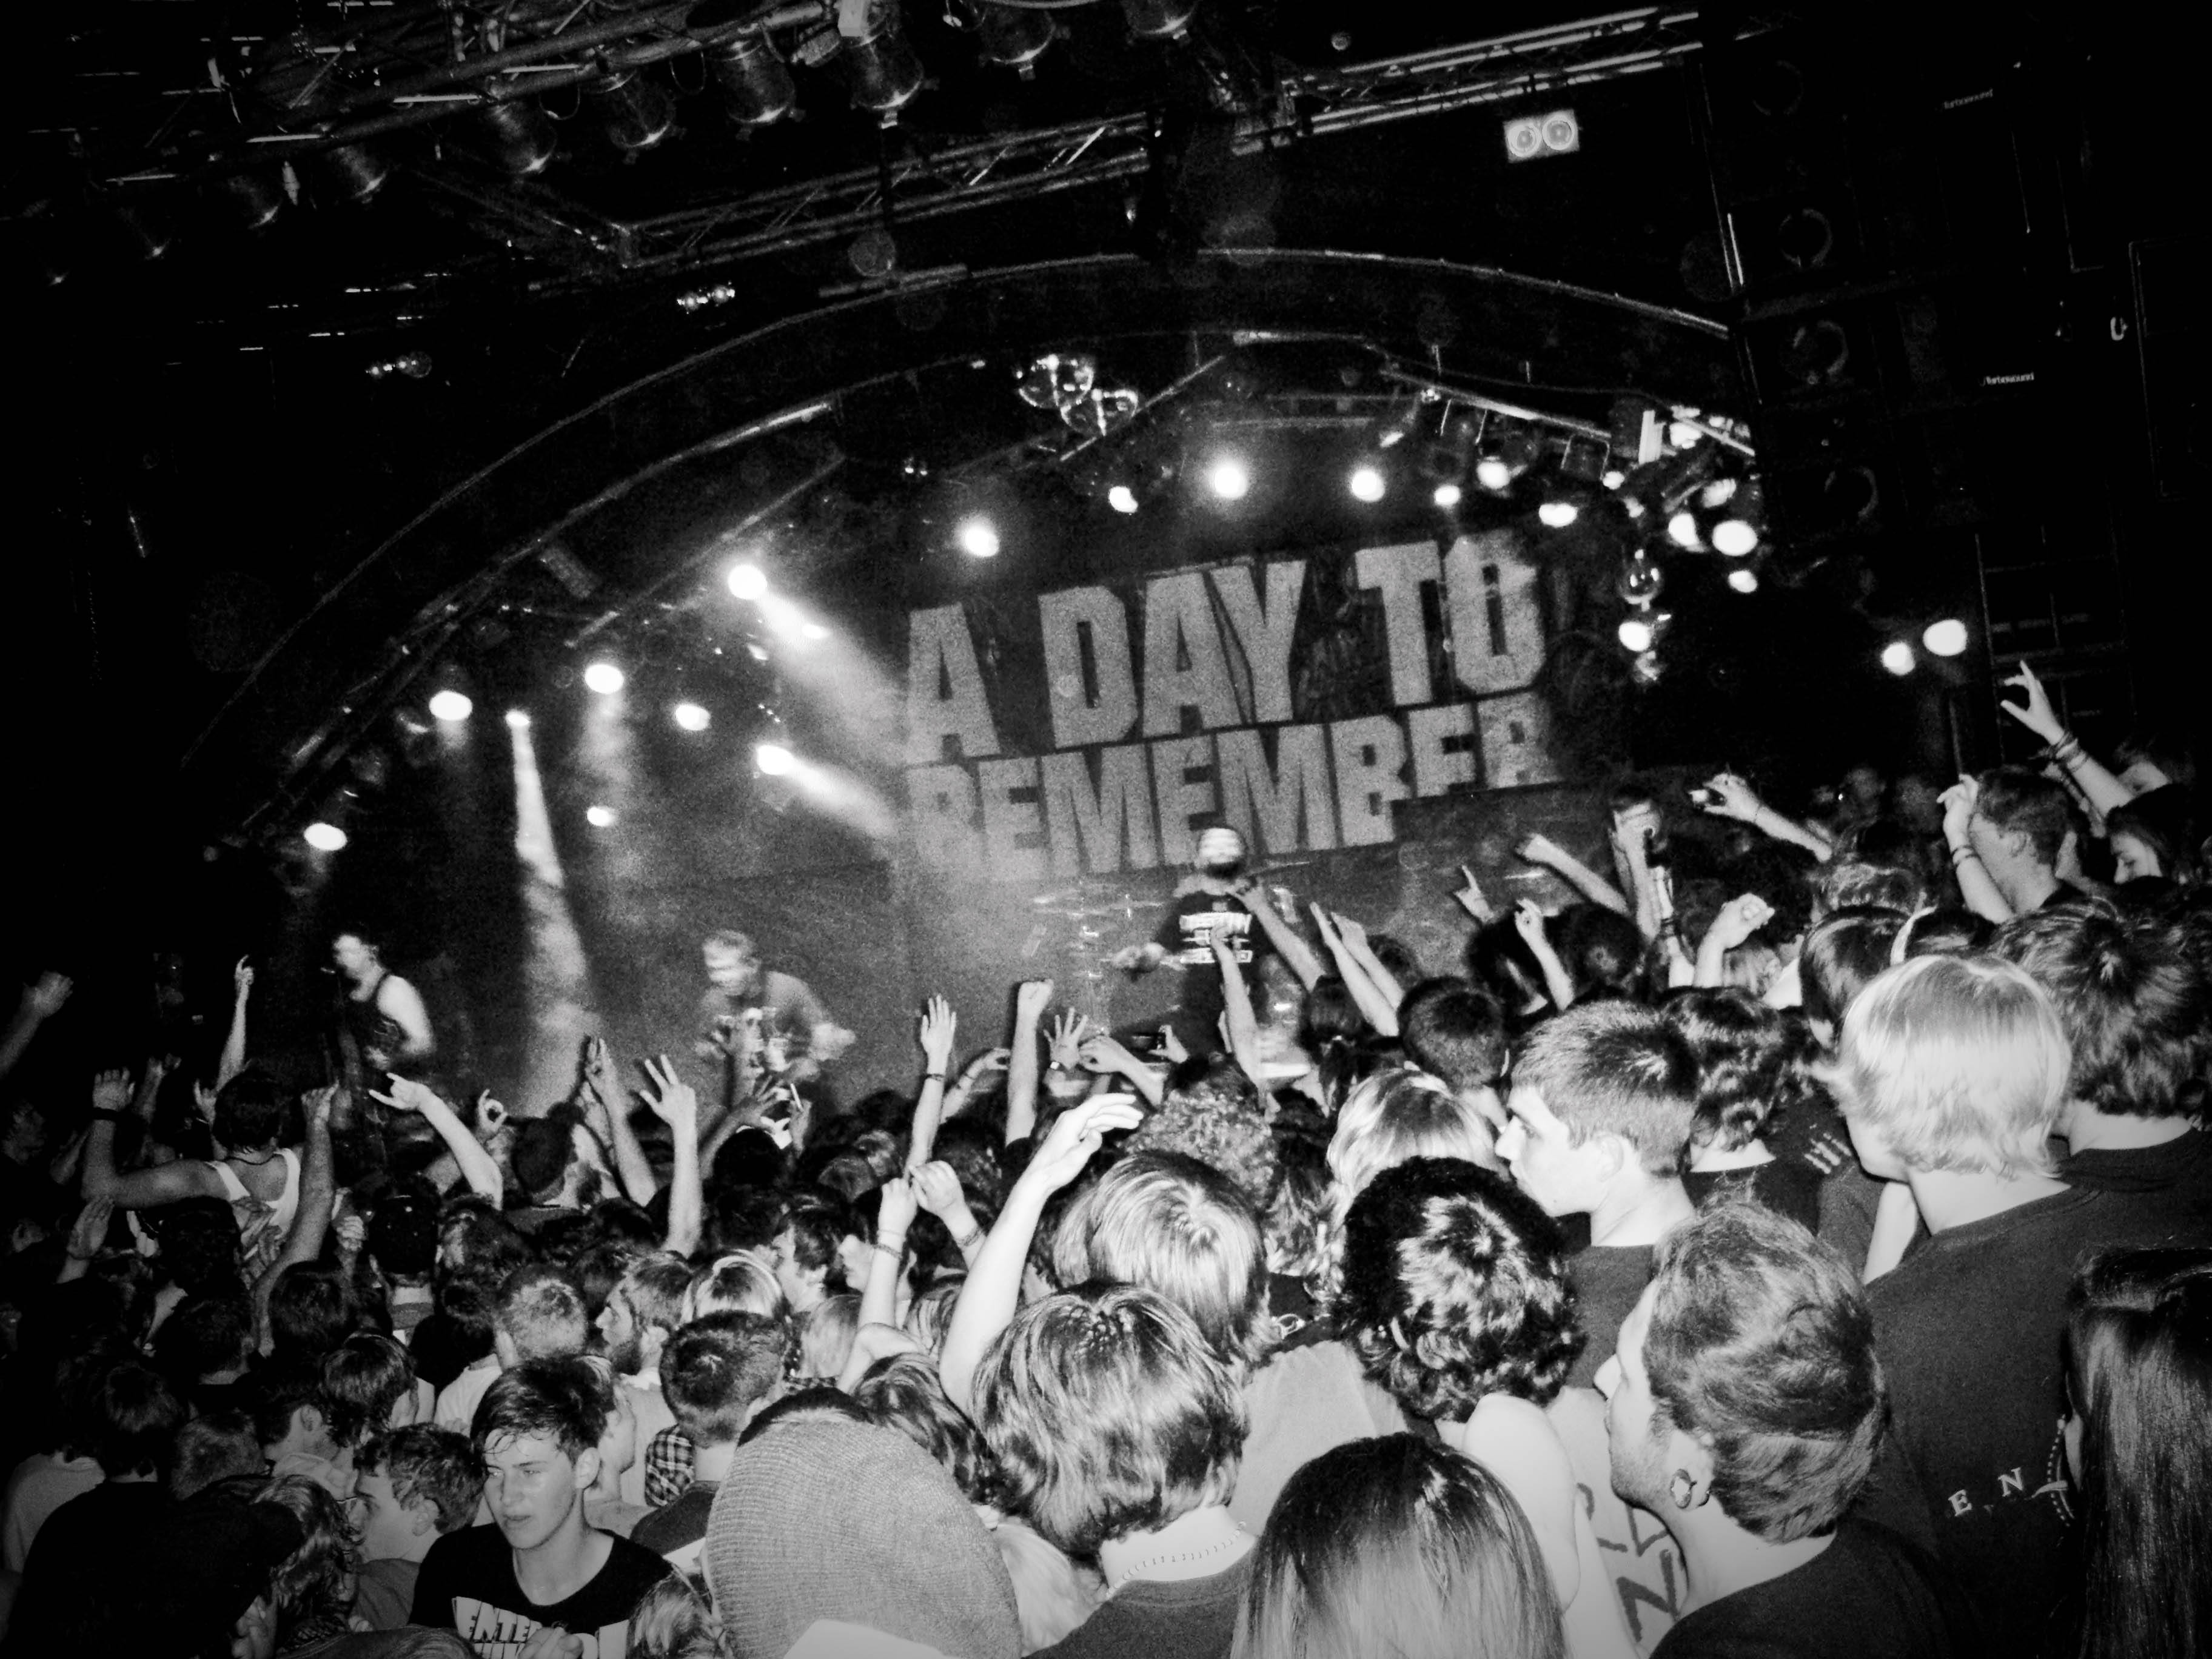 A Day To Remember Wallpapers - Wallpaper Cave A Day To Remember Live Wallpaper